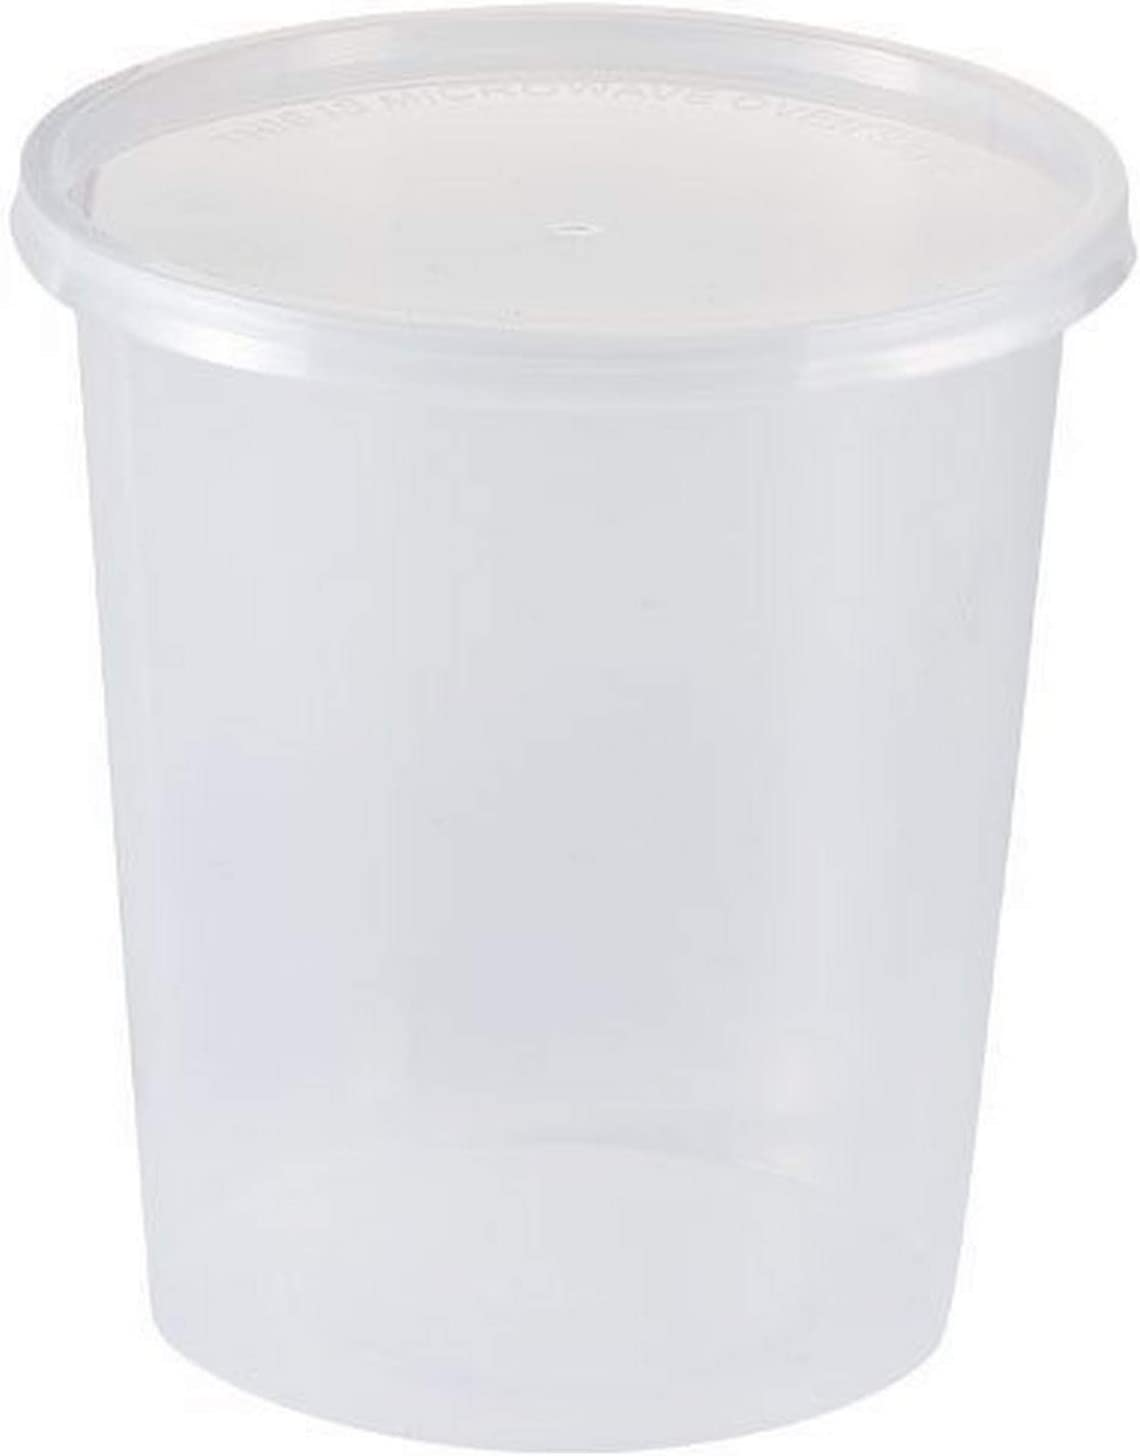 Nicole Home Collection Clear Round Lid | 32 oz | Pack of 4 Storage Container